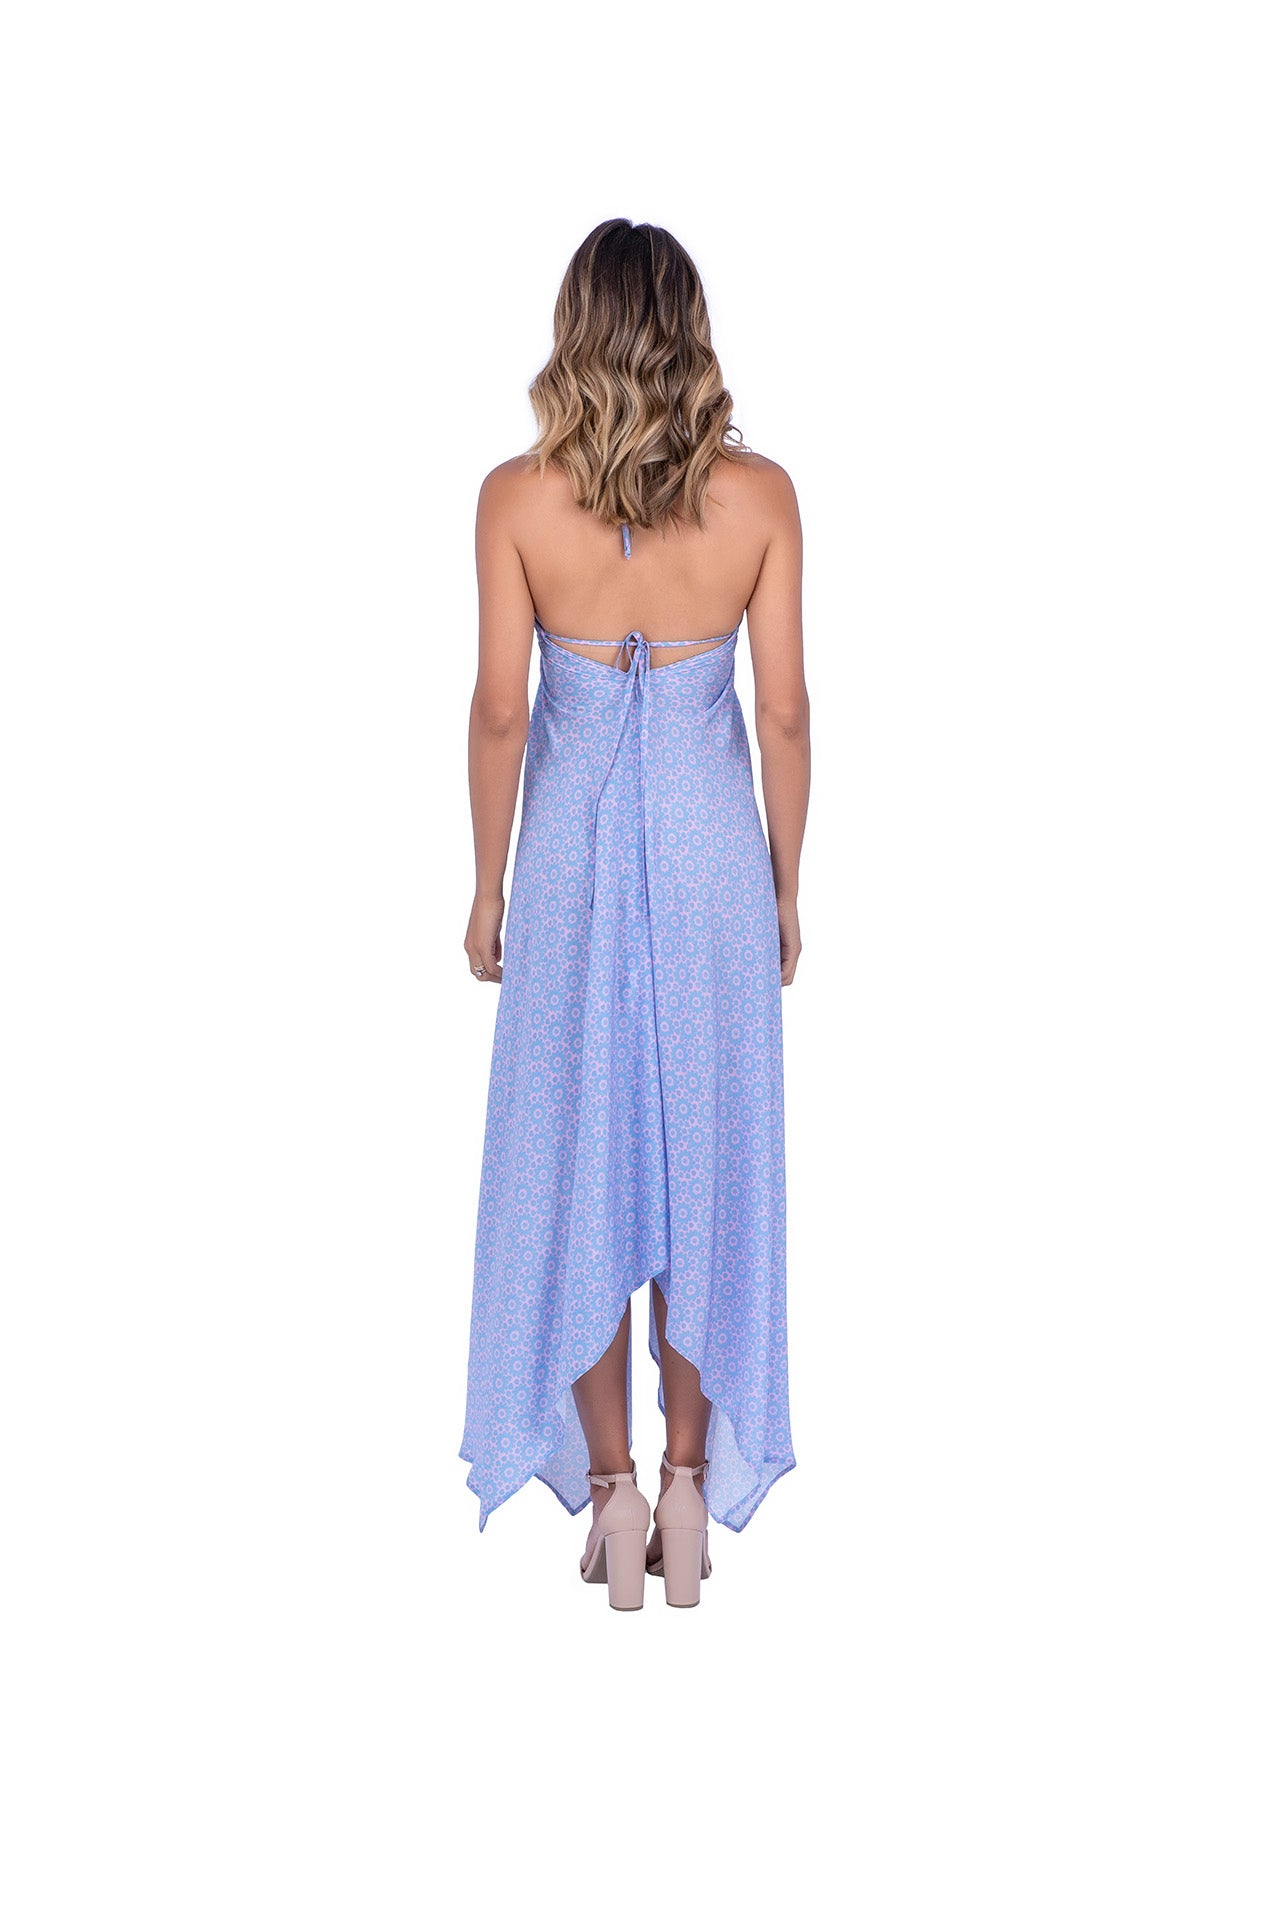 Fairy Silk Dress - Pink Blue Mantra Print Dresses - artTECA